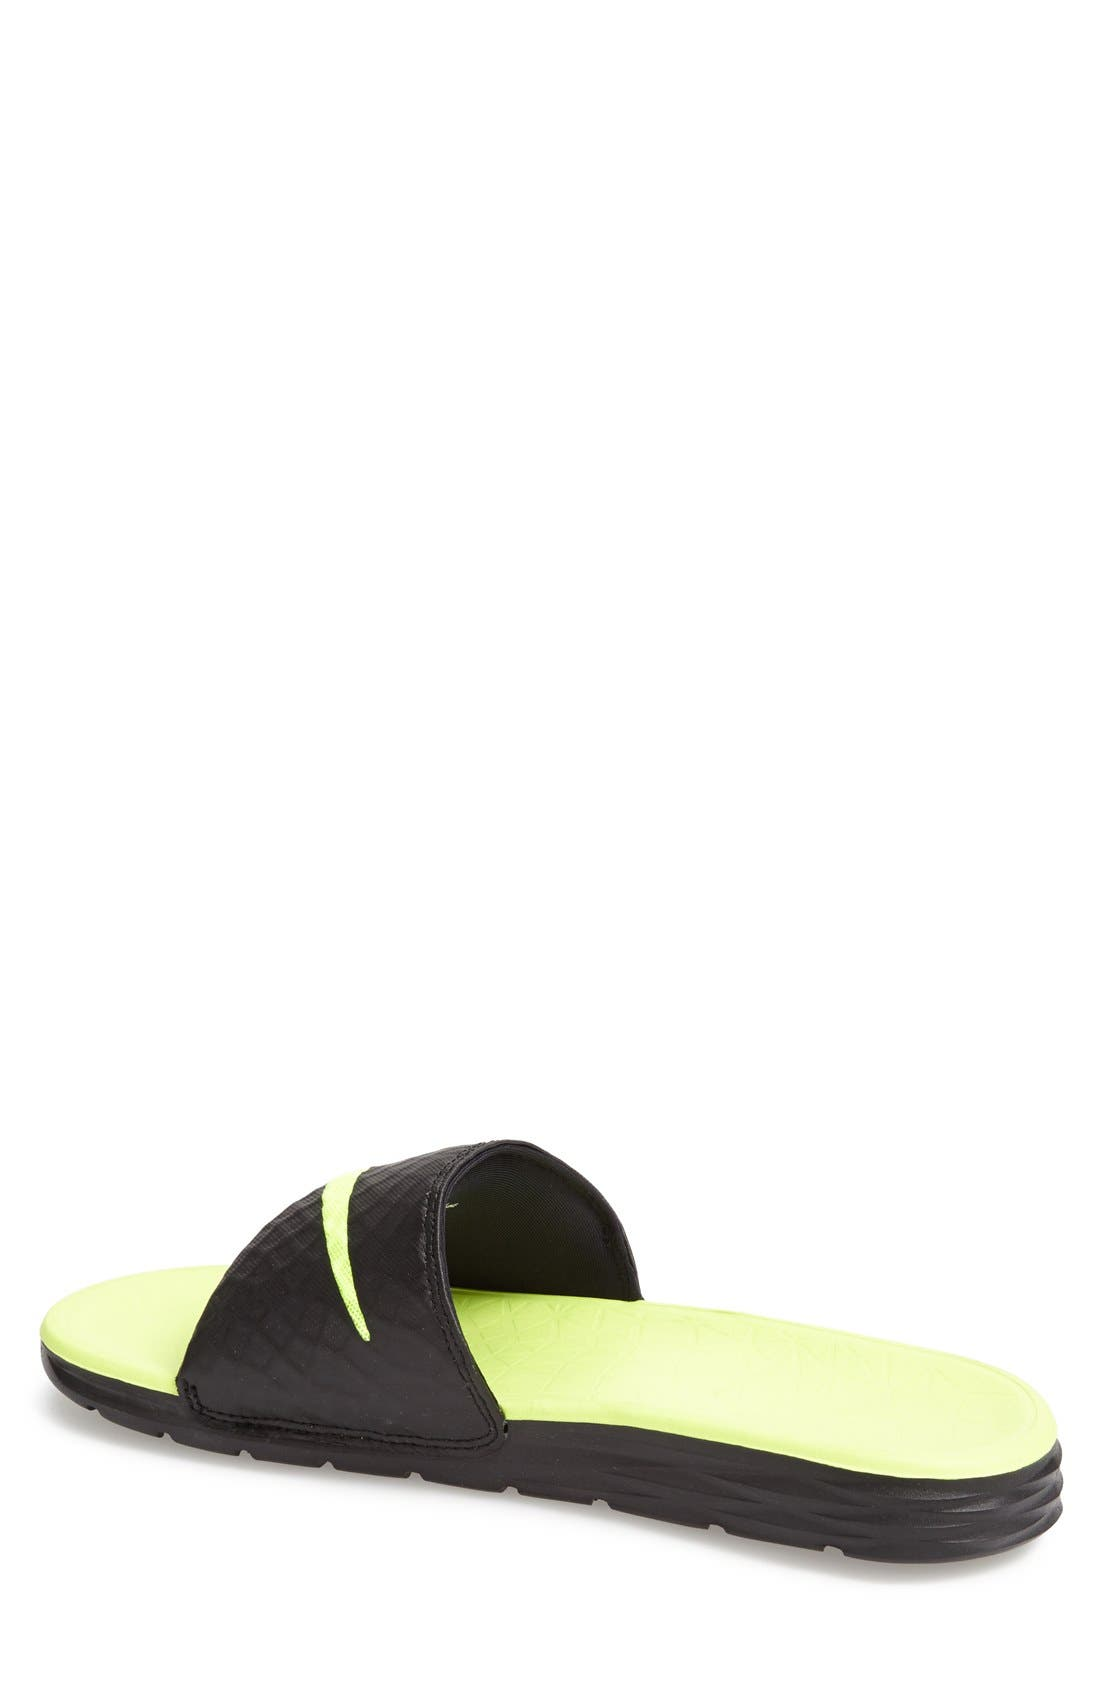 'Benassi Solarsoft 2' Slide Sandal,                             Alternate thumbnail 2, color,                             BLACK/ VOLT